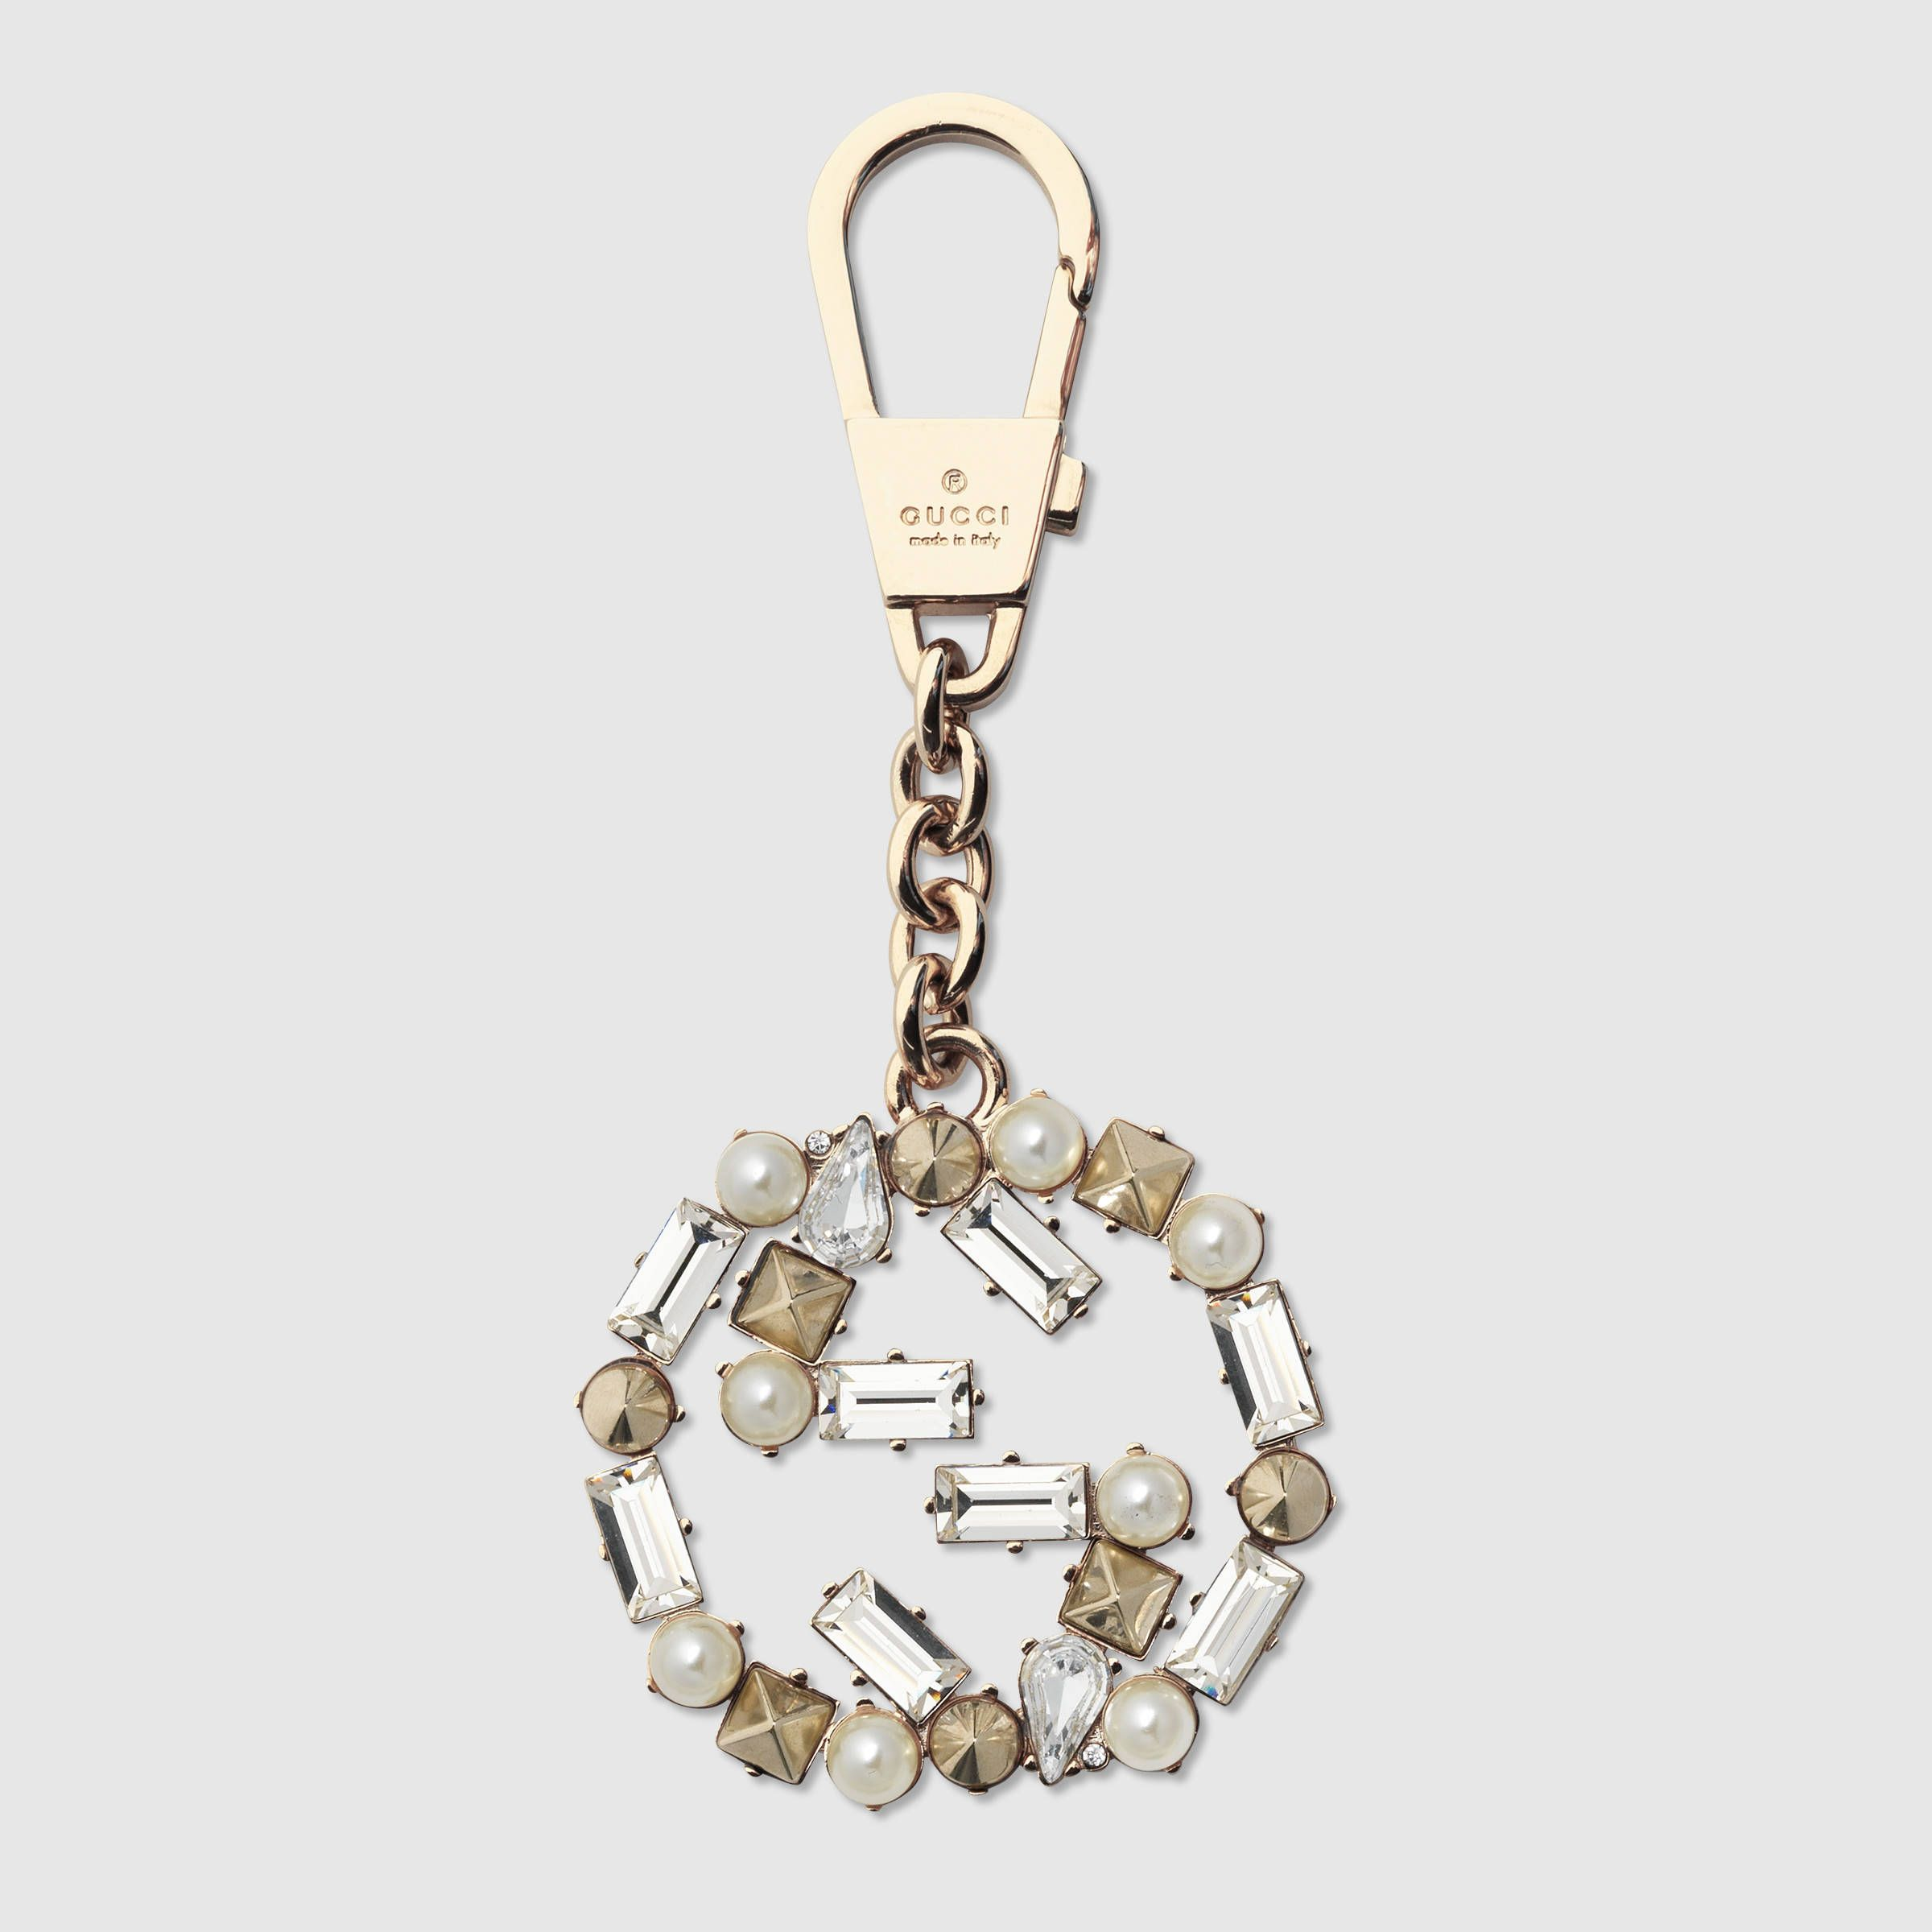 948d8c100c4a Gucci Women - Interlocking G key ring - 388391I12KG8069